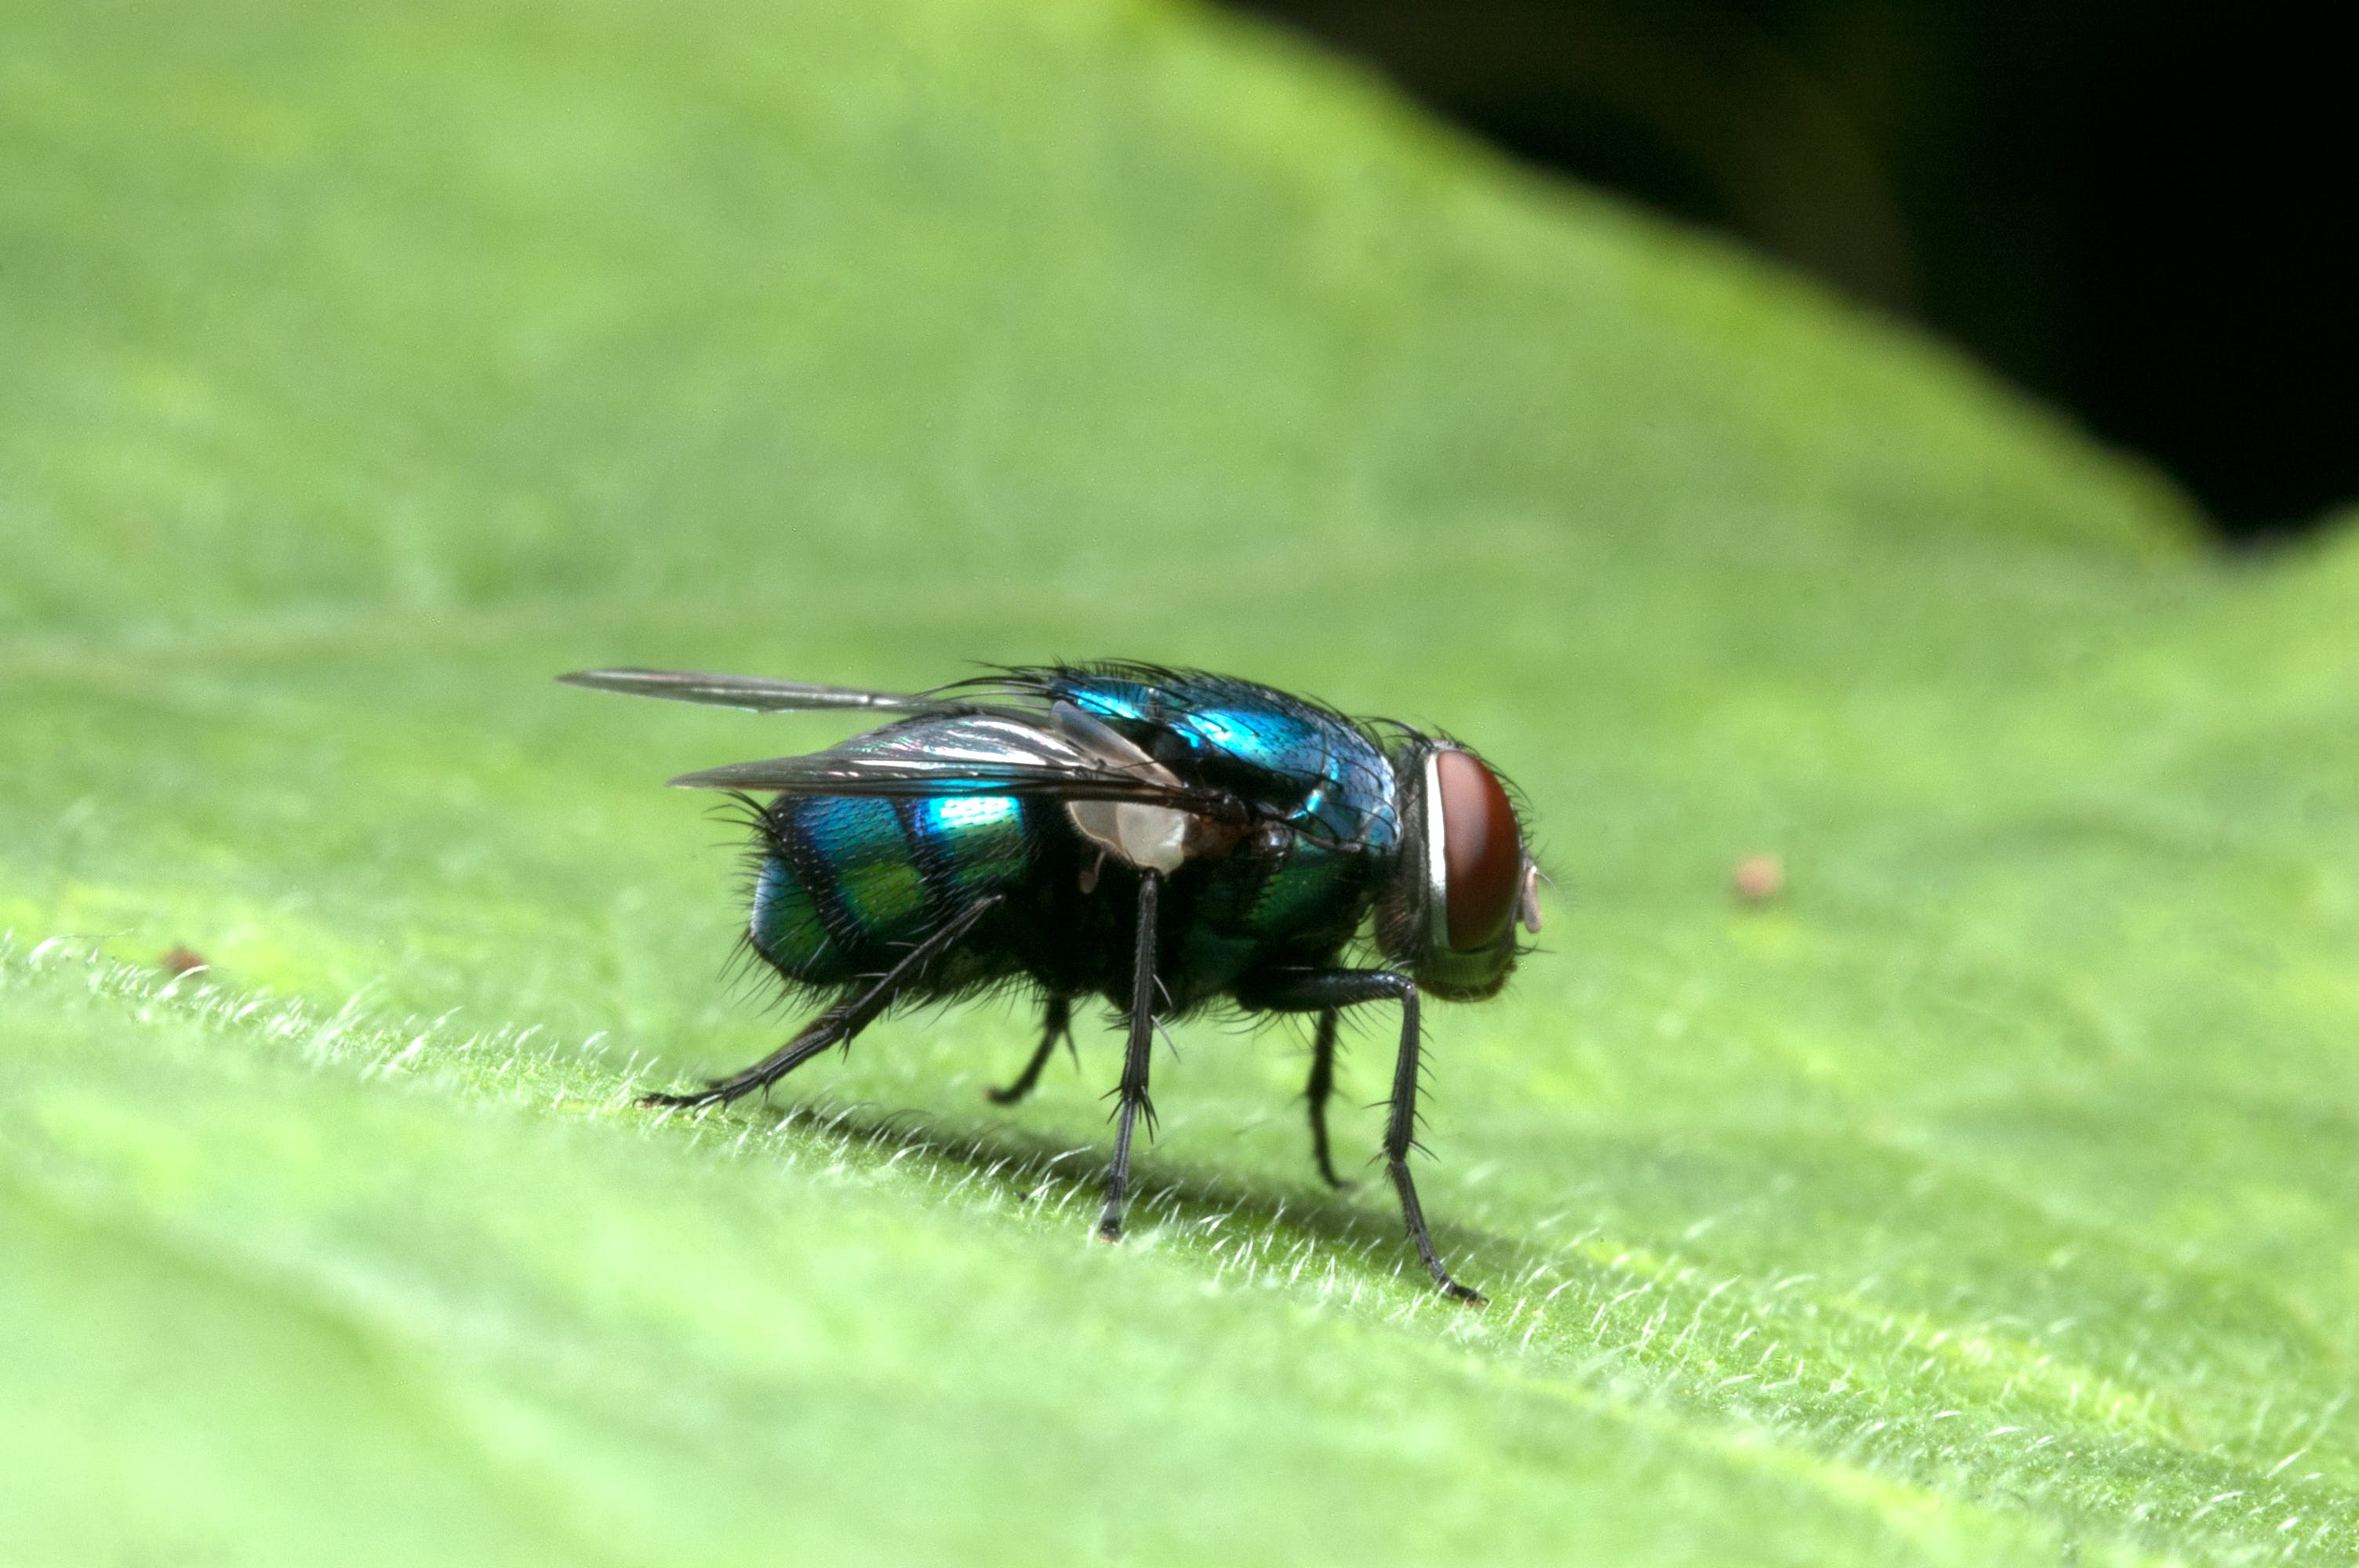 Free stock photo of blue, compound eyes, housefly, insect